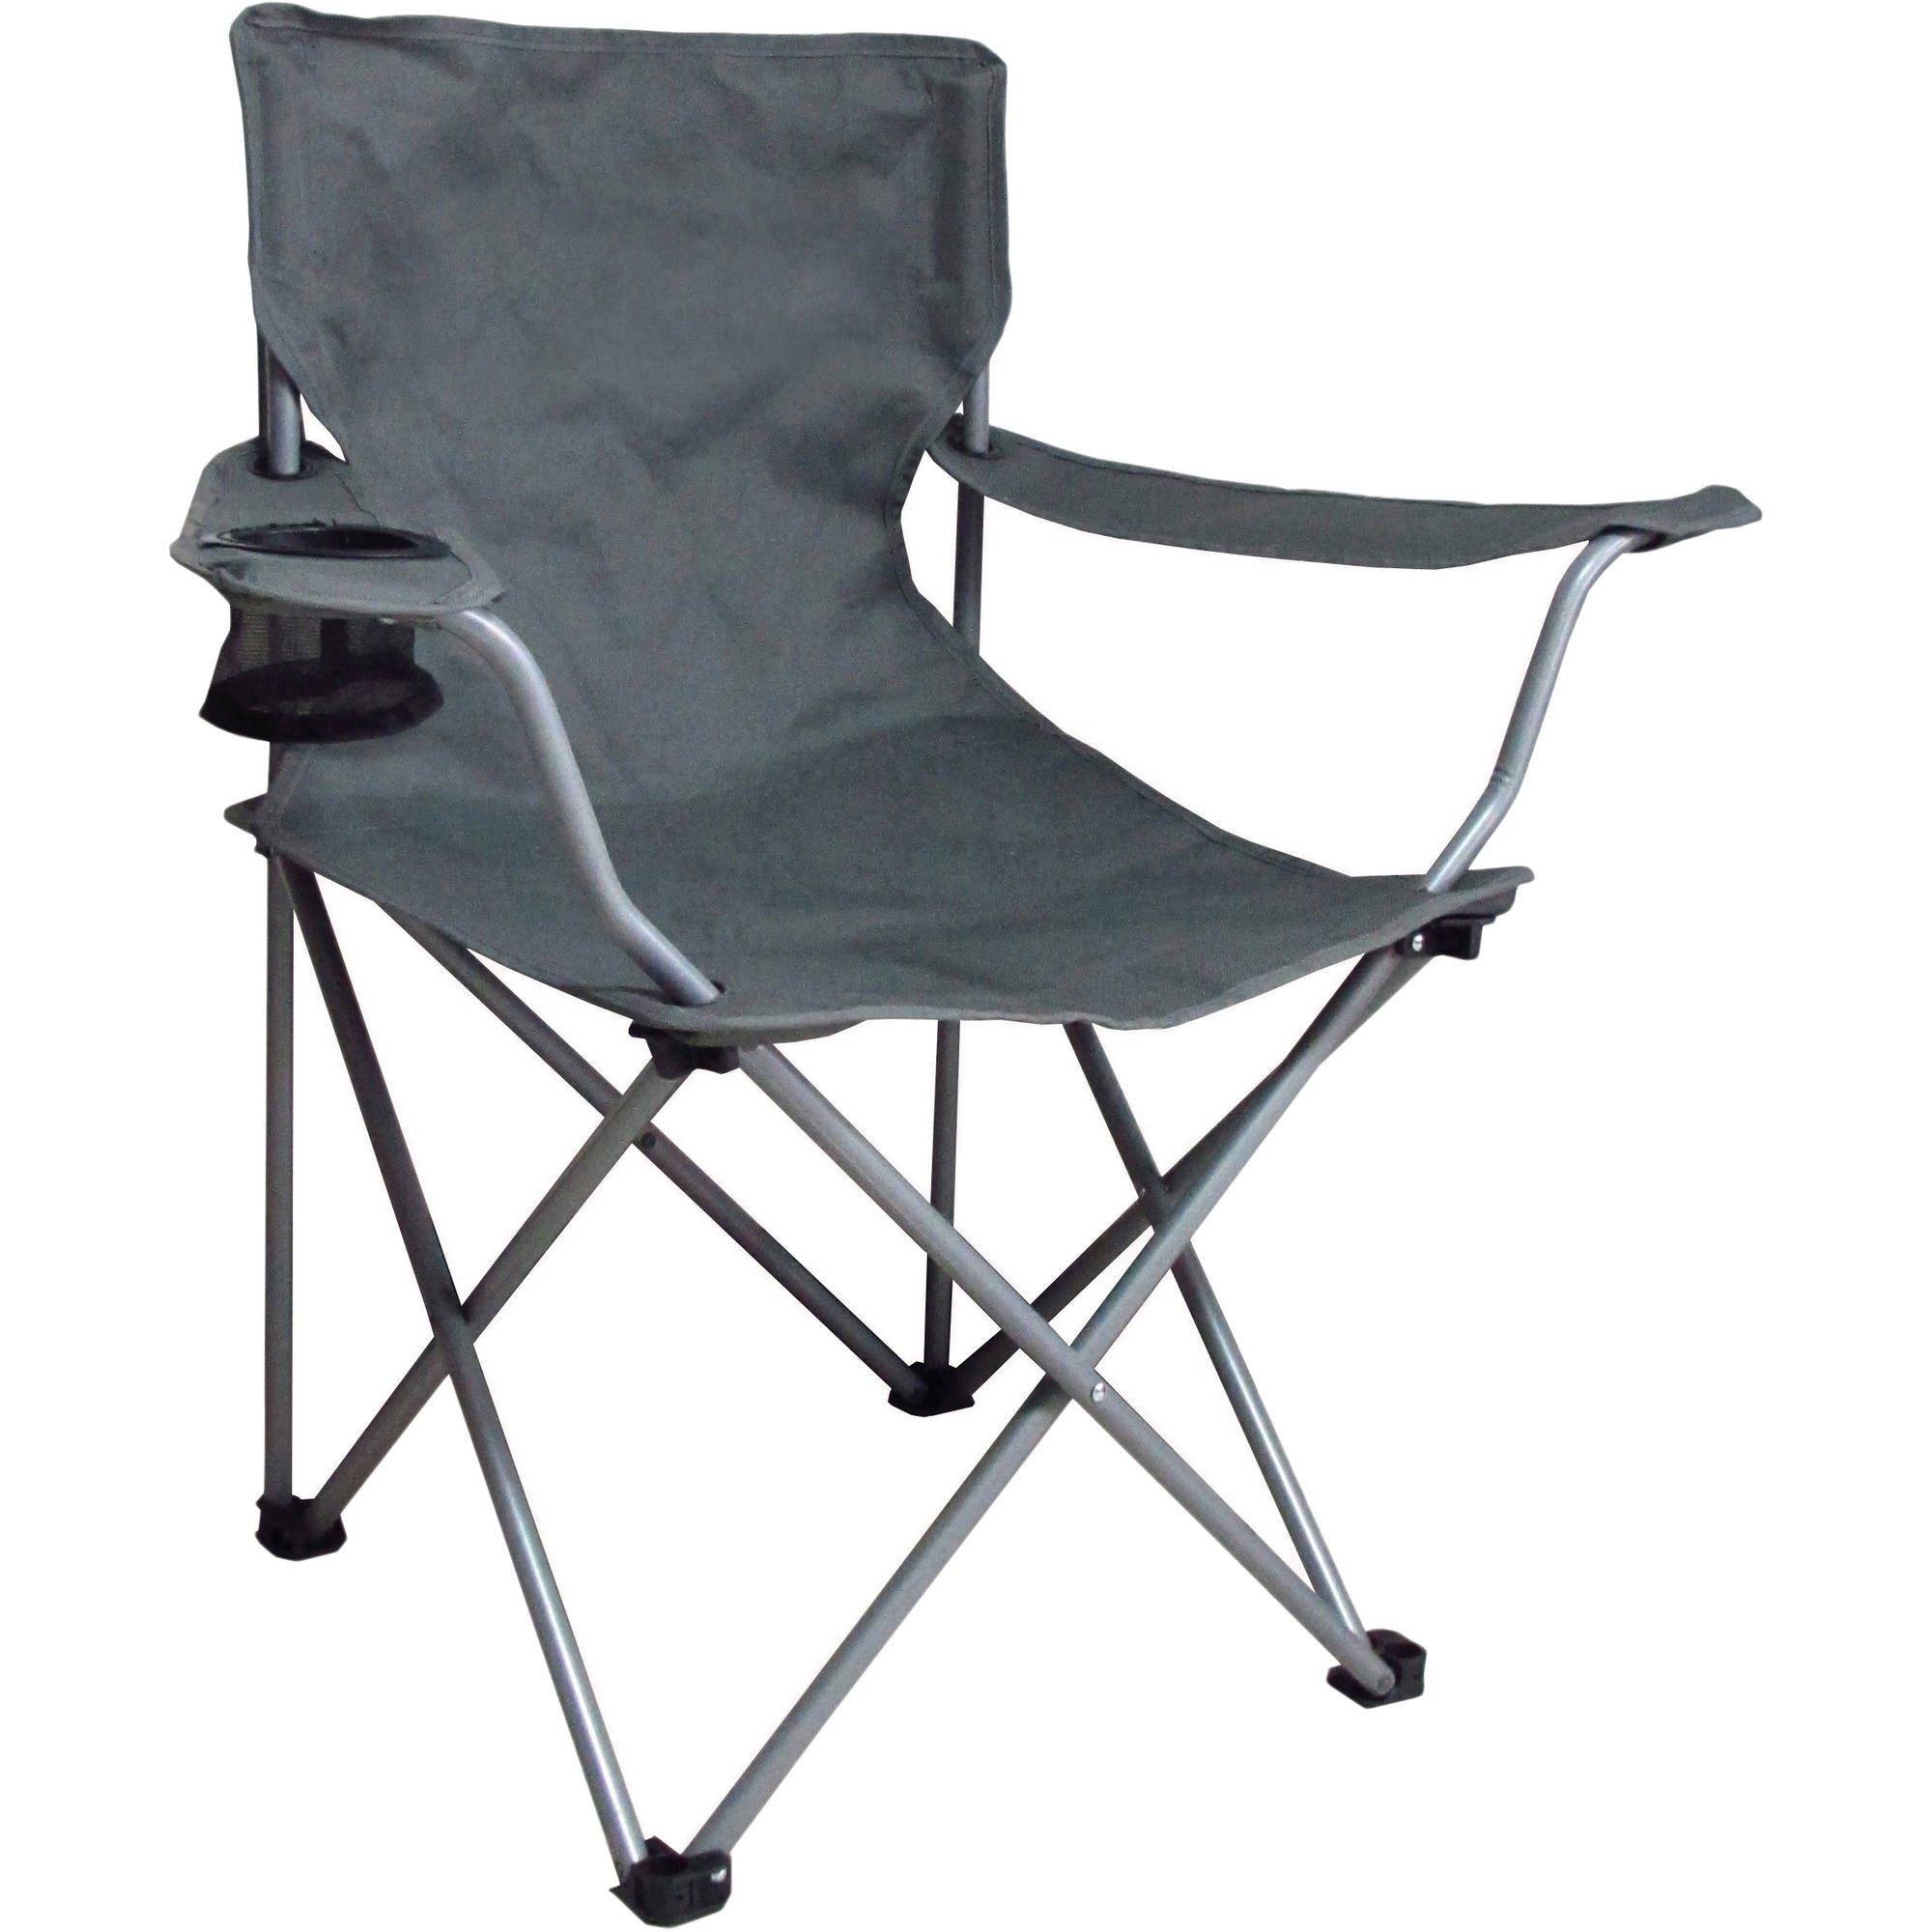 folding chairs ozark trail folding chair - walmart.com SDEVSMU